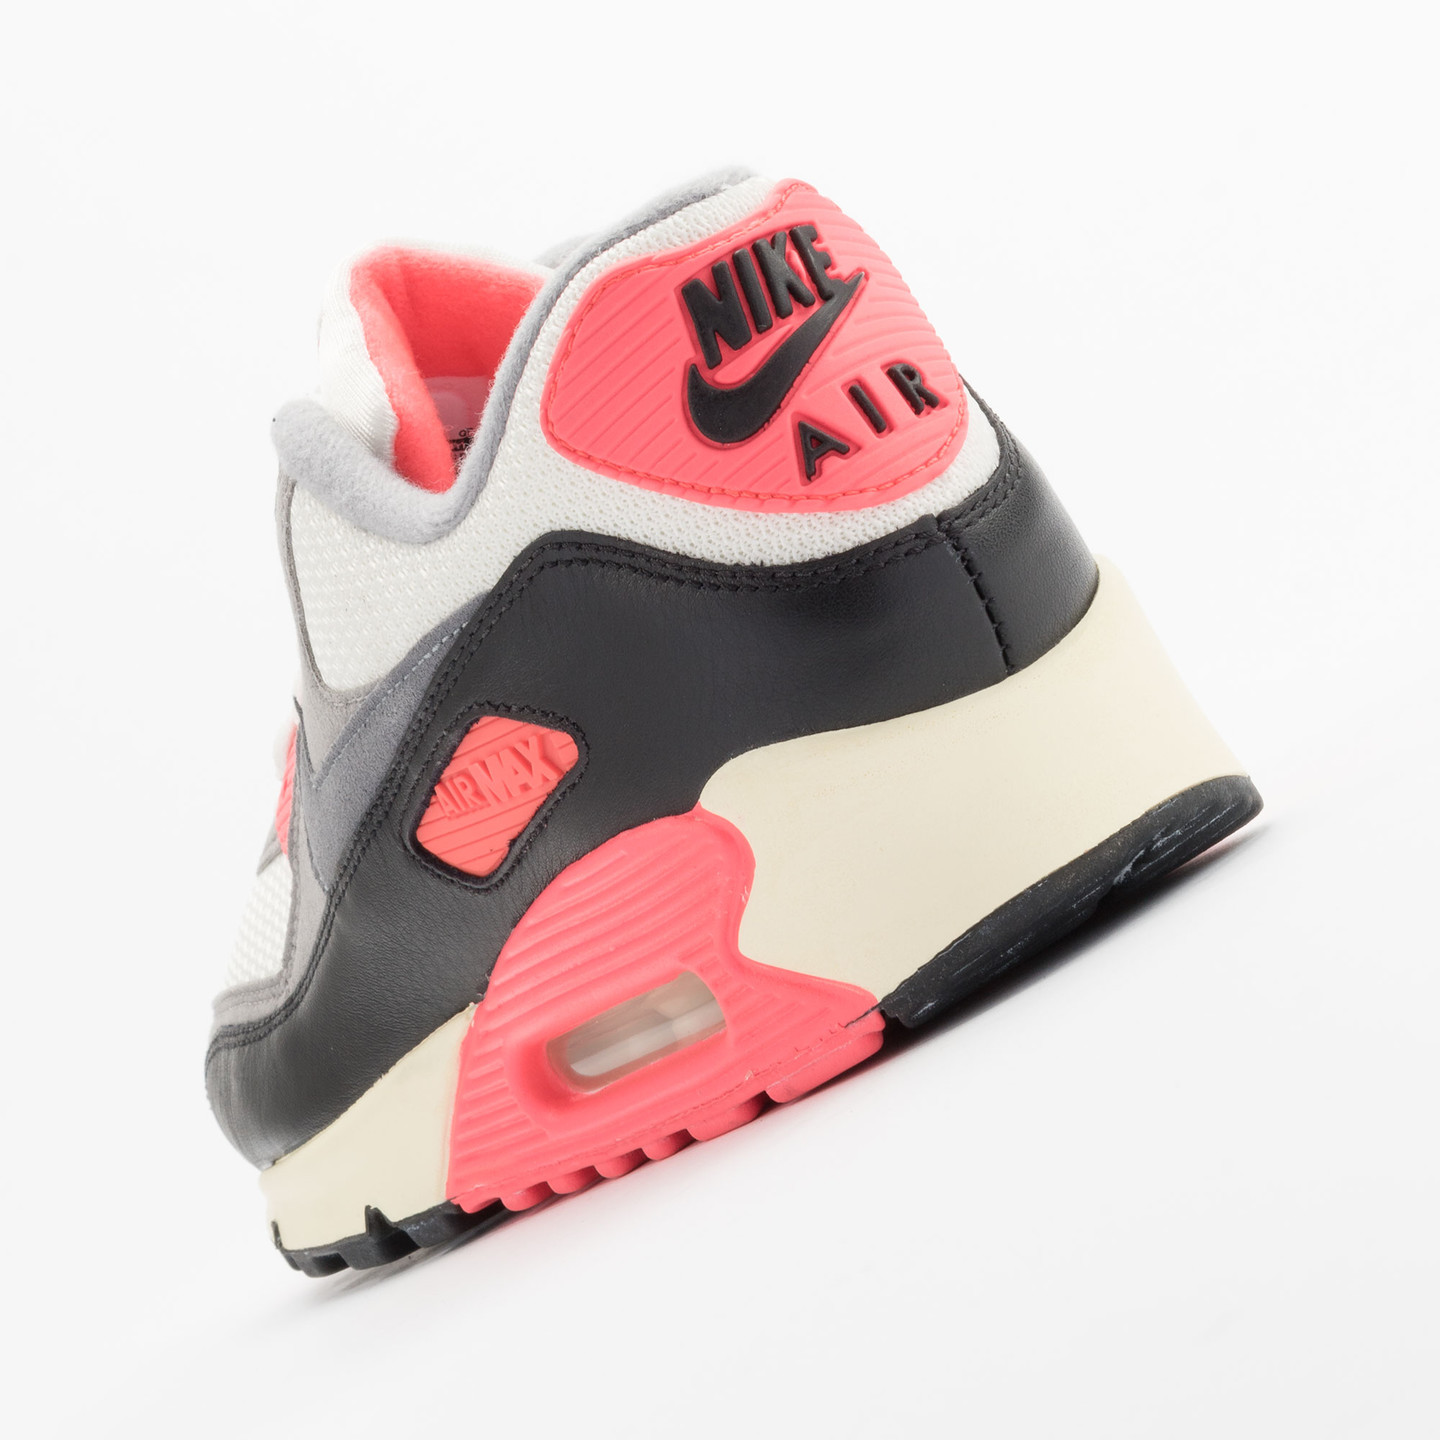 Nike Air Max 90 OG Vintage Infrared Sail/Cool Grey-Mdm Grey-Infrrd 543361-161-47.5